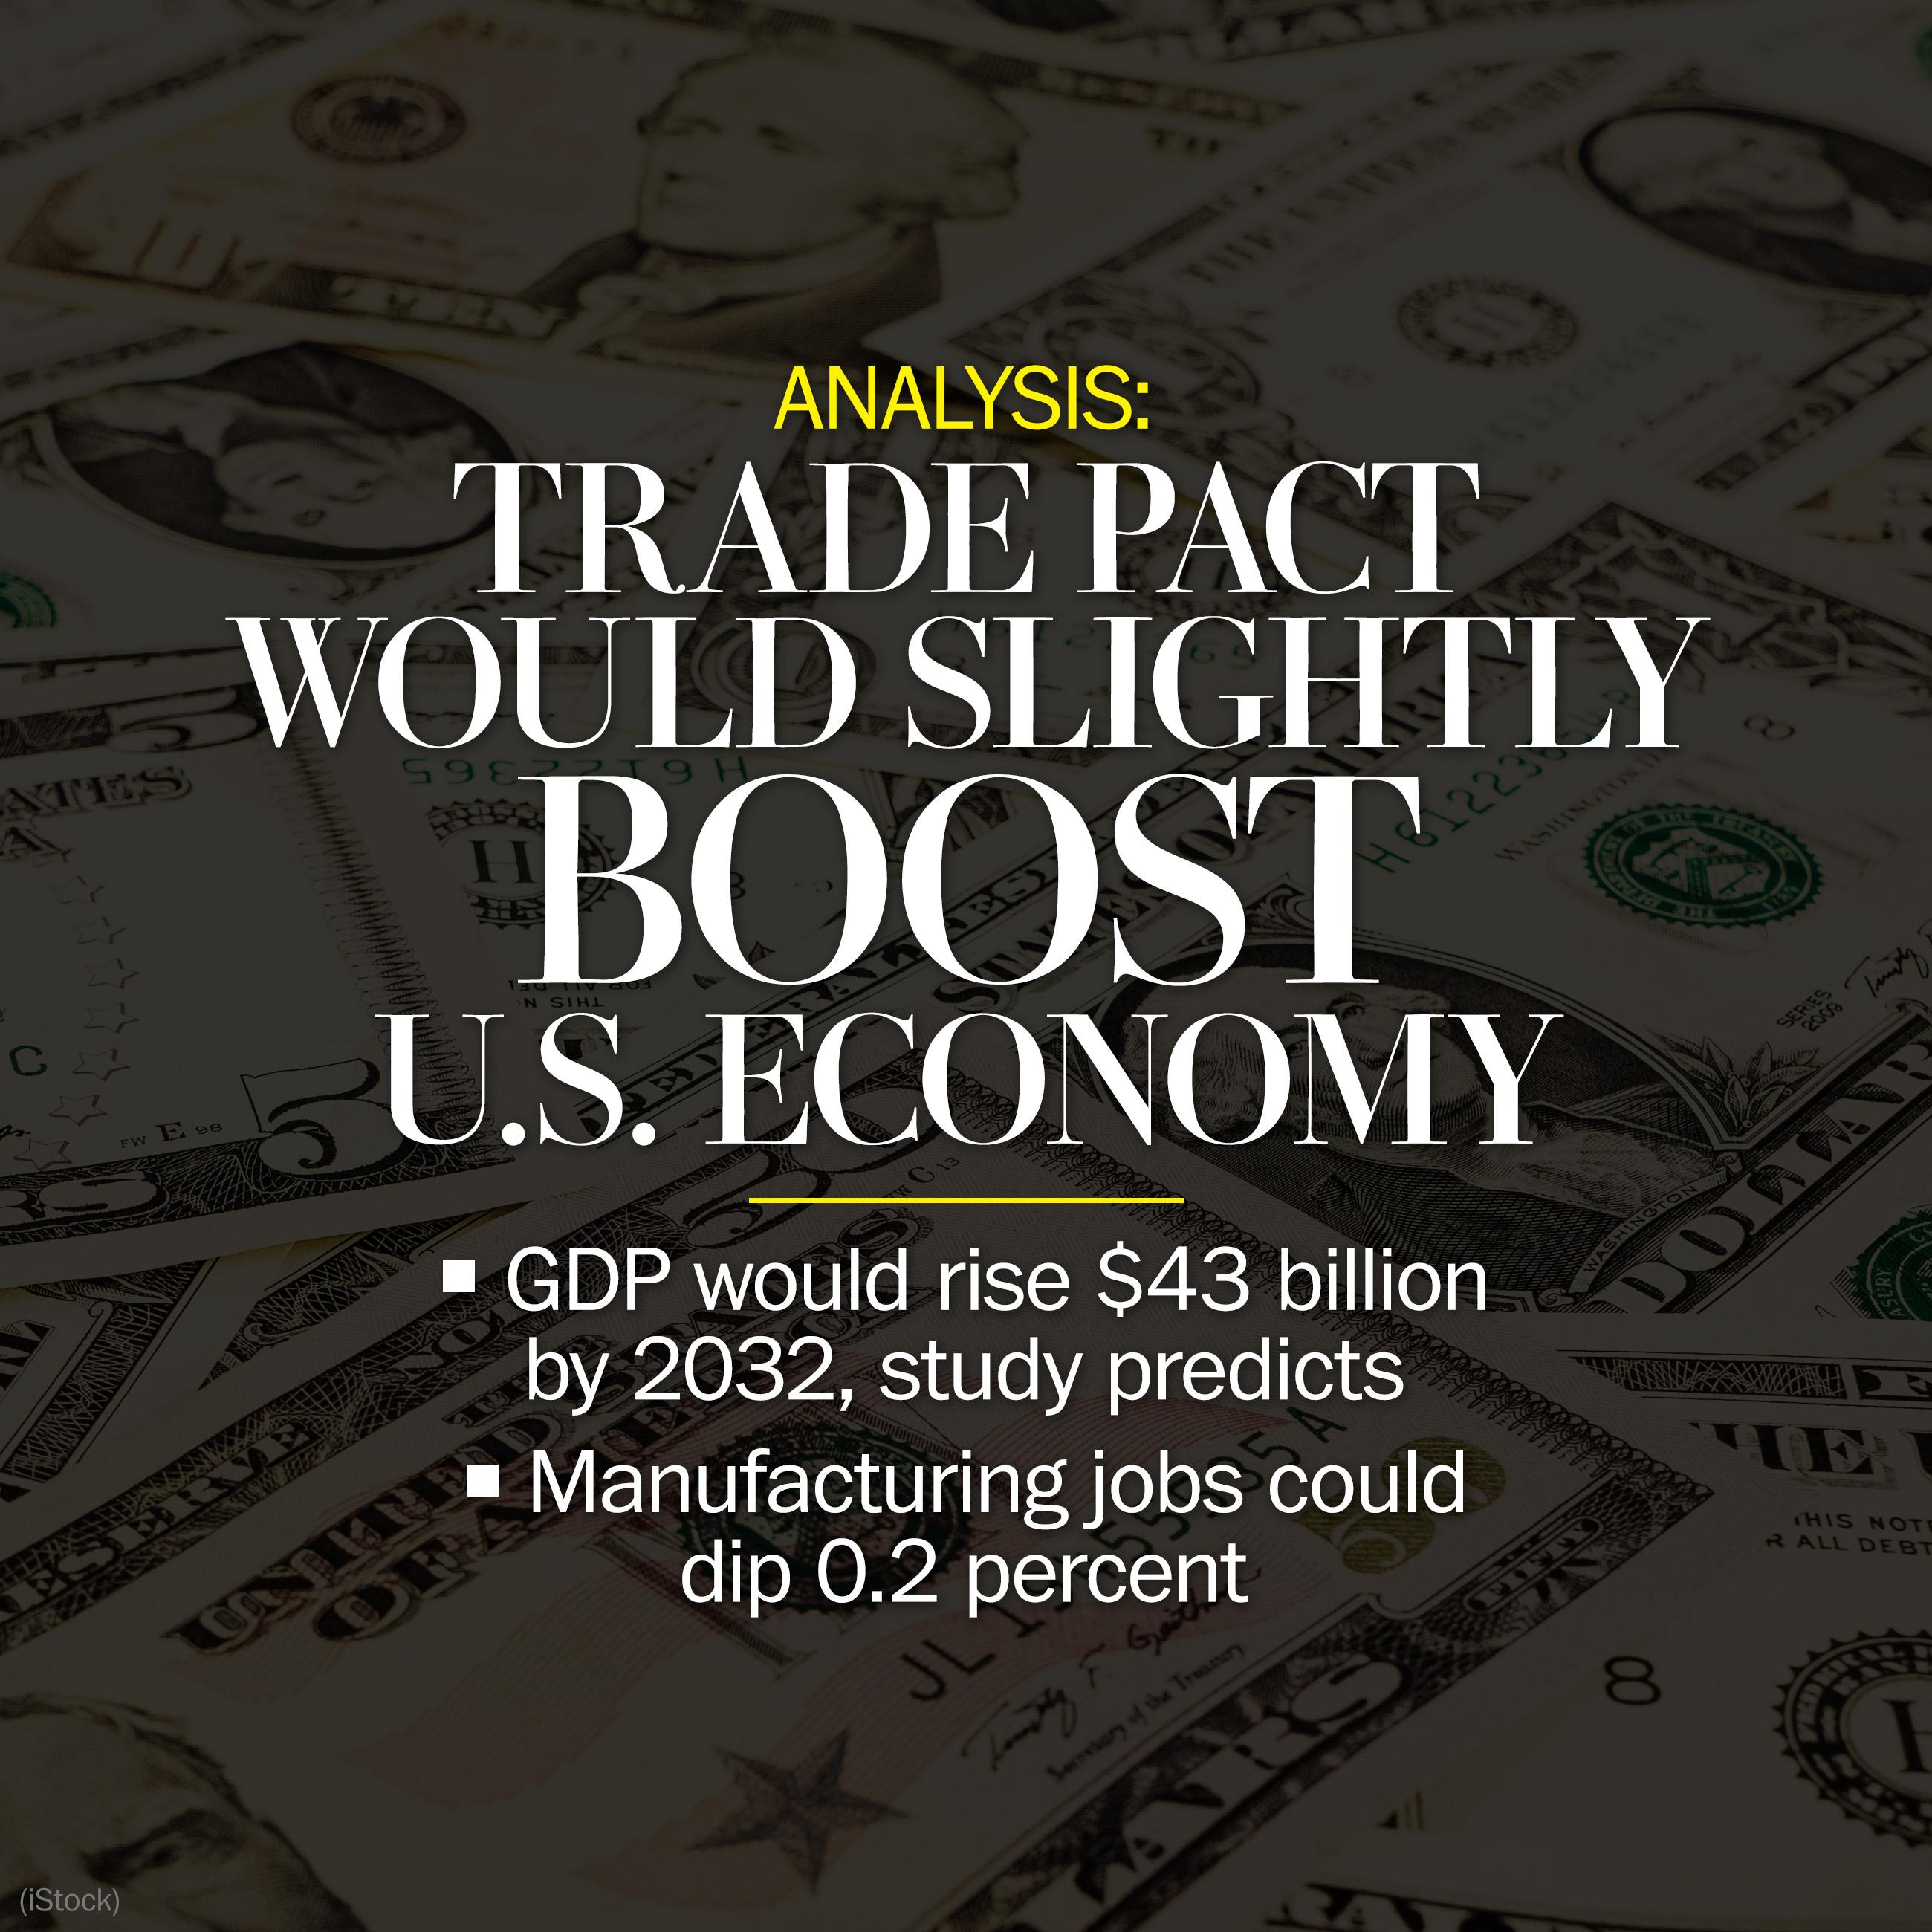 Study predicts modest economic boost for U.S. from Obama trade pact